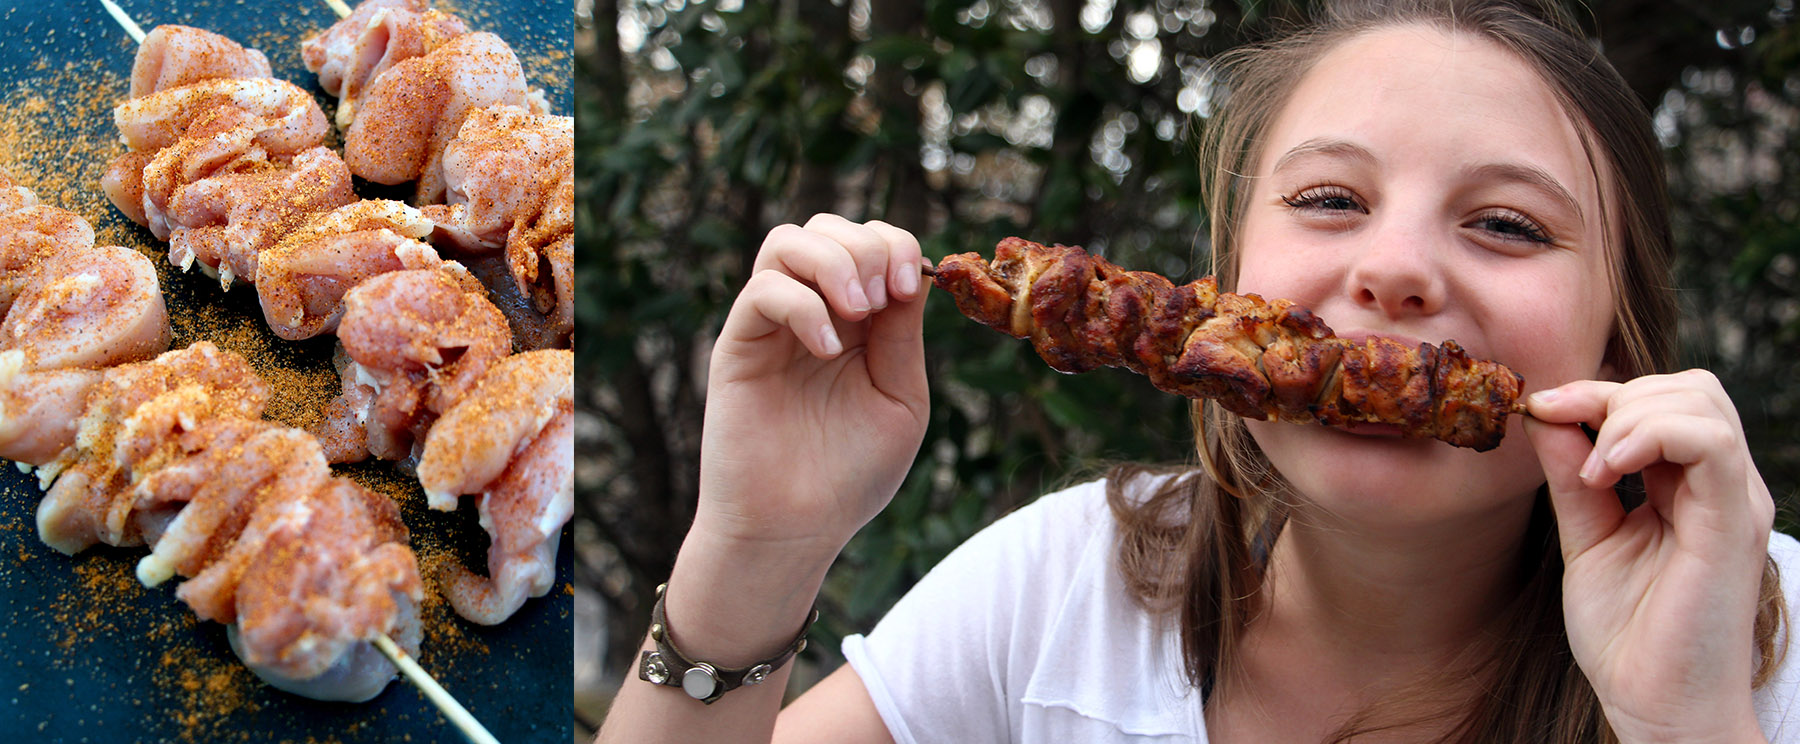 Photo of skewered, boneless chicken thighs seasoned with JK's Seasoning and photo of girl eating chicken from skewer.